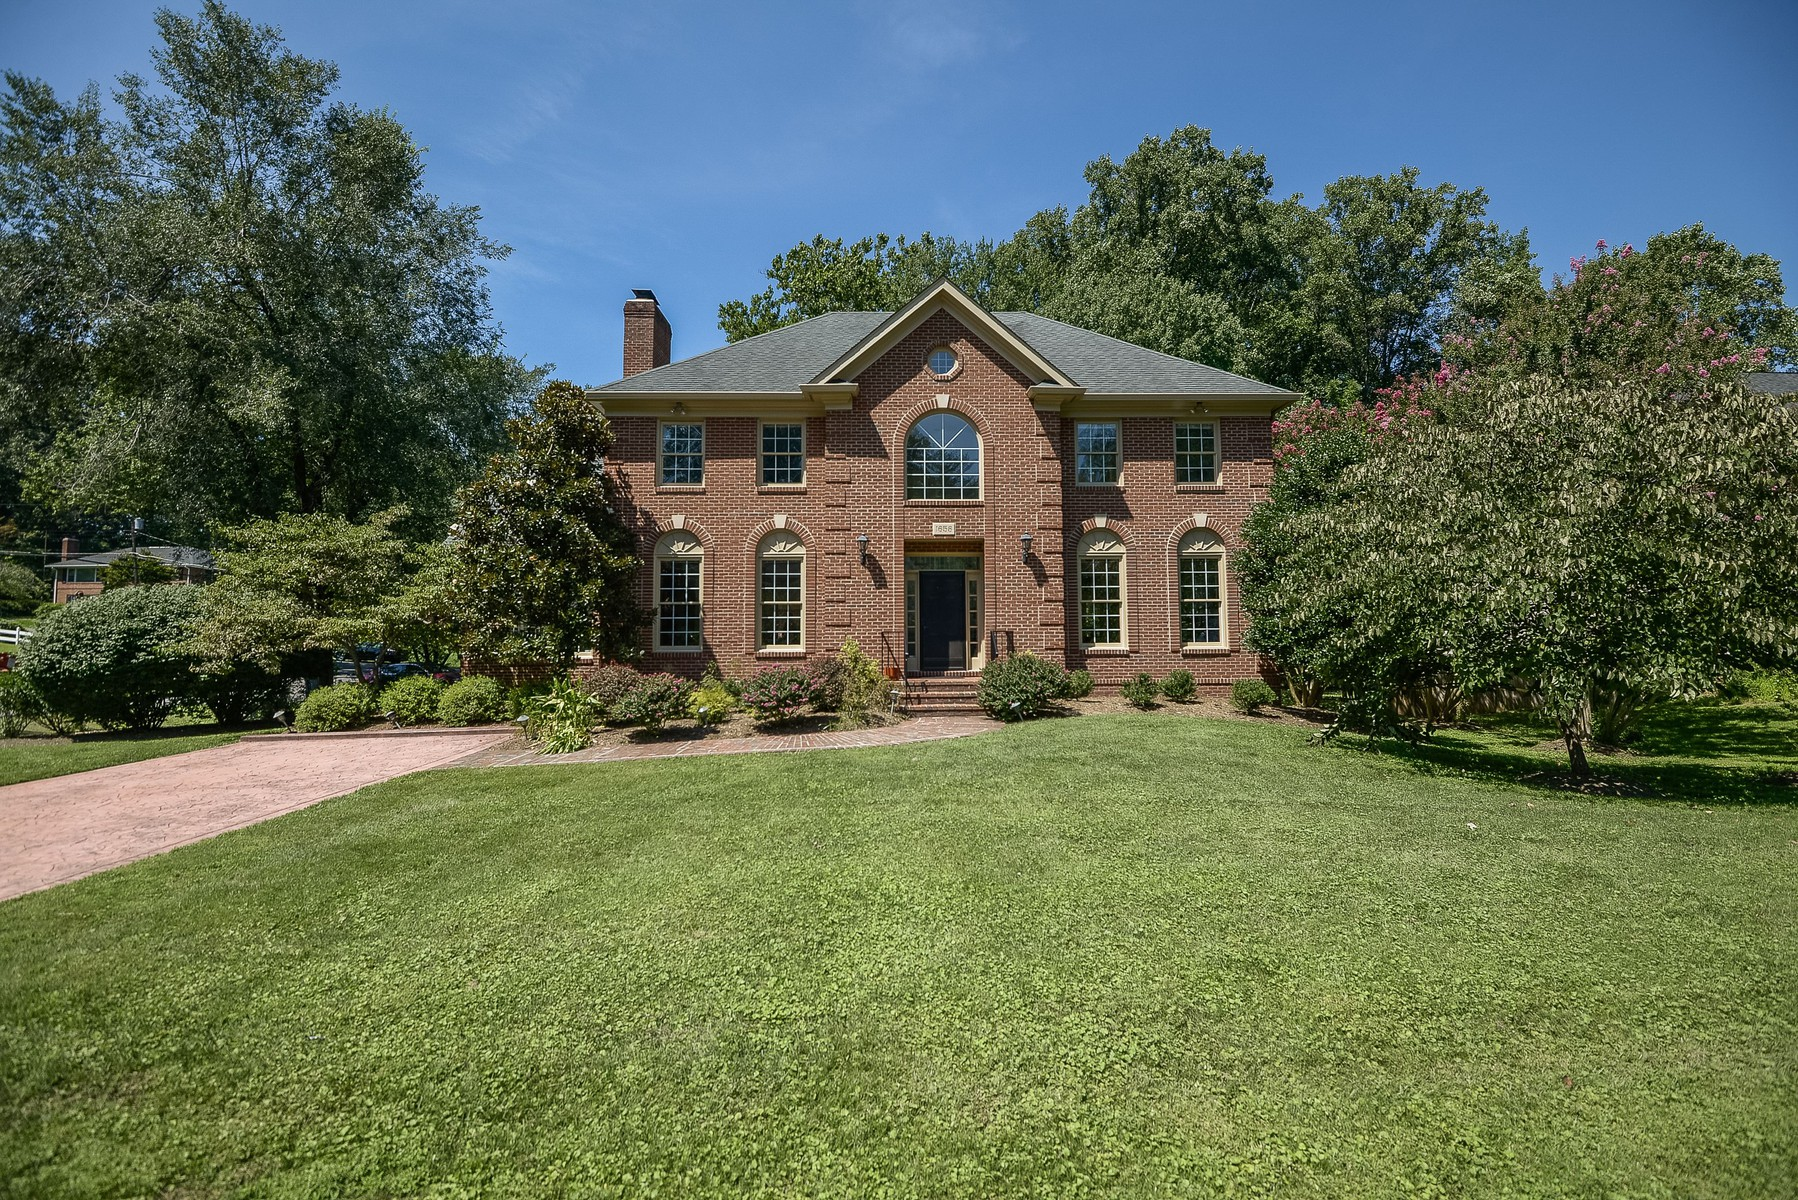 Additional photo for property listing at Lanes Chesterbrook 1658 Valley Ave McLean, Virginia 22101 Estados Unidos